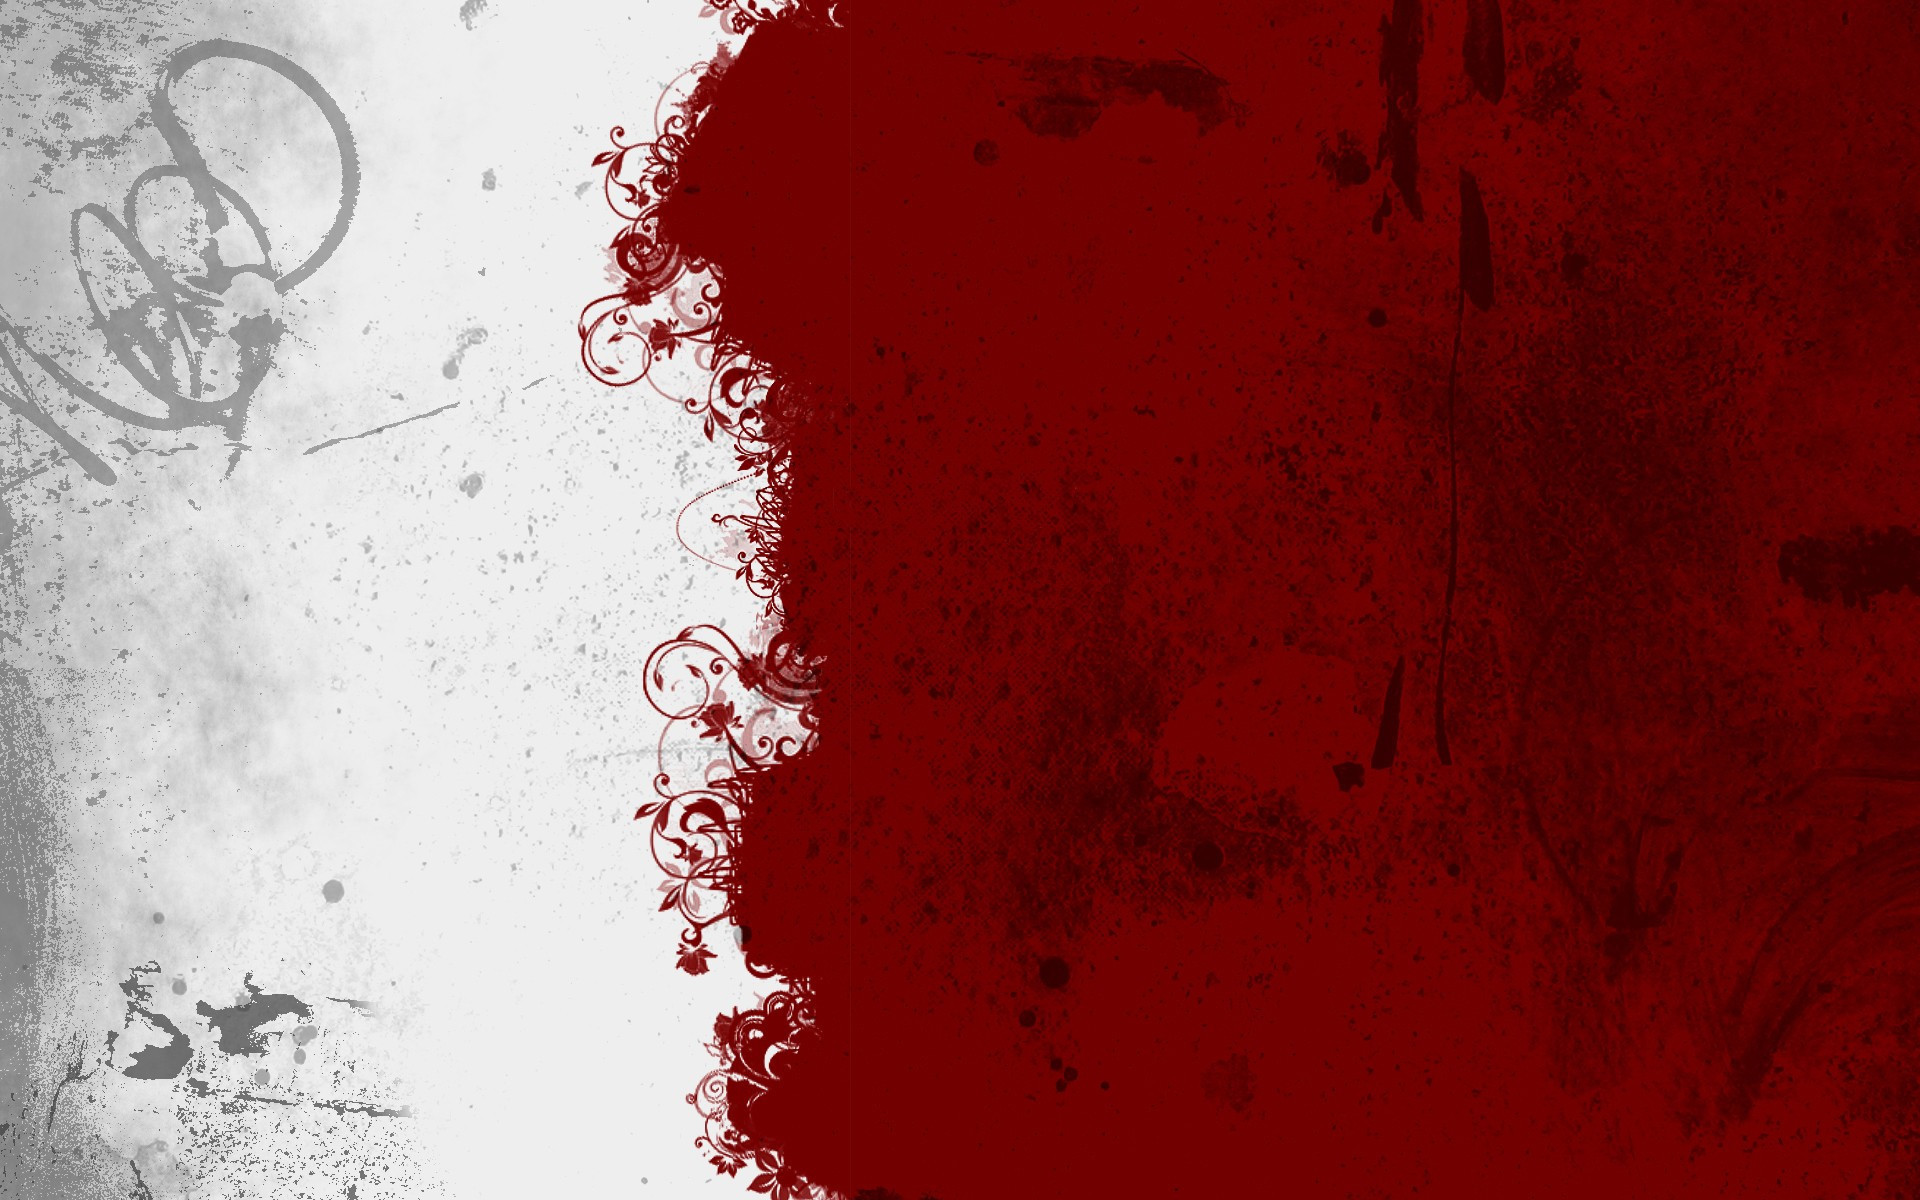 Abstract White And Red Wallpapers Posted By Ryan Cunningham